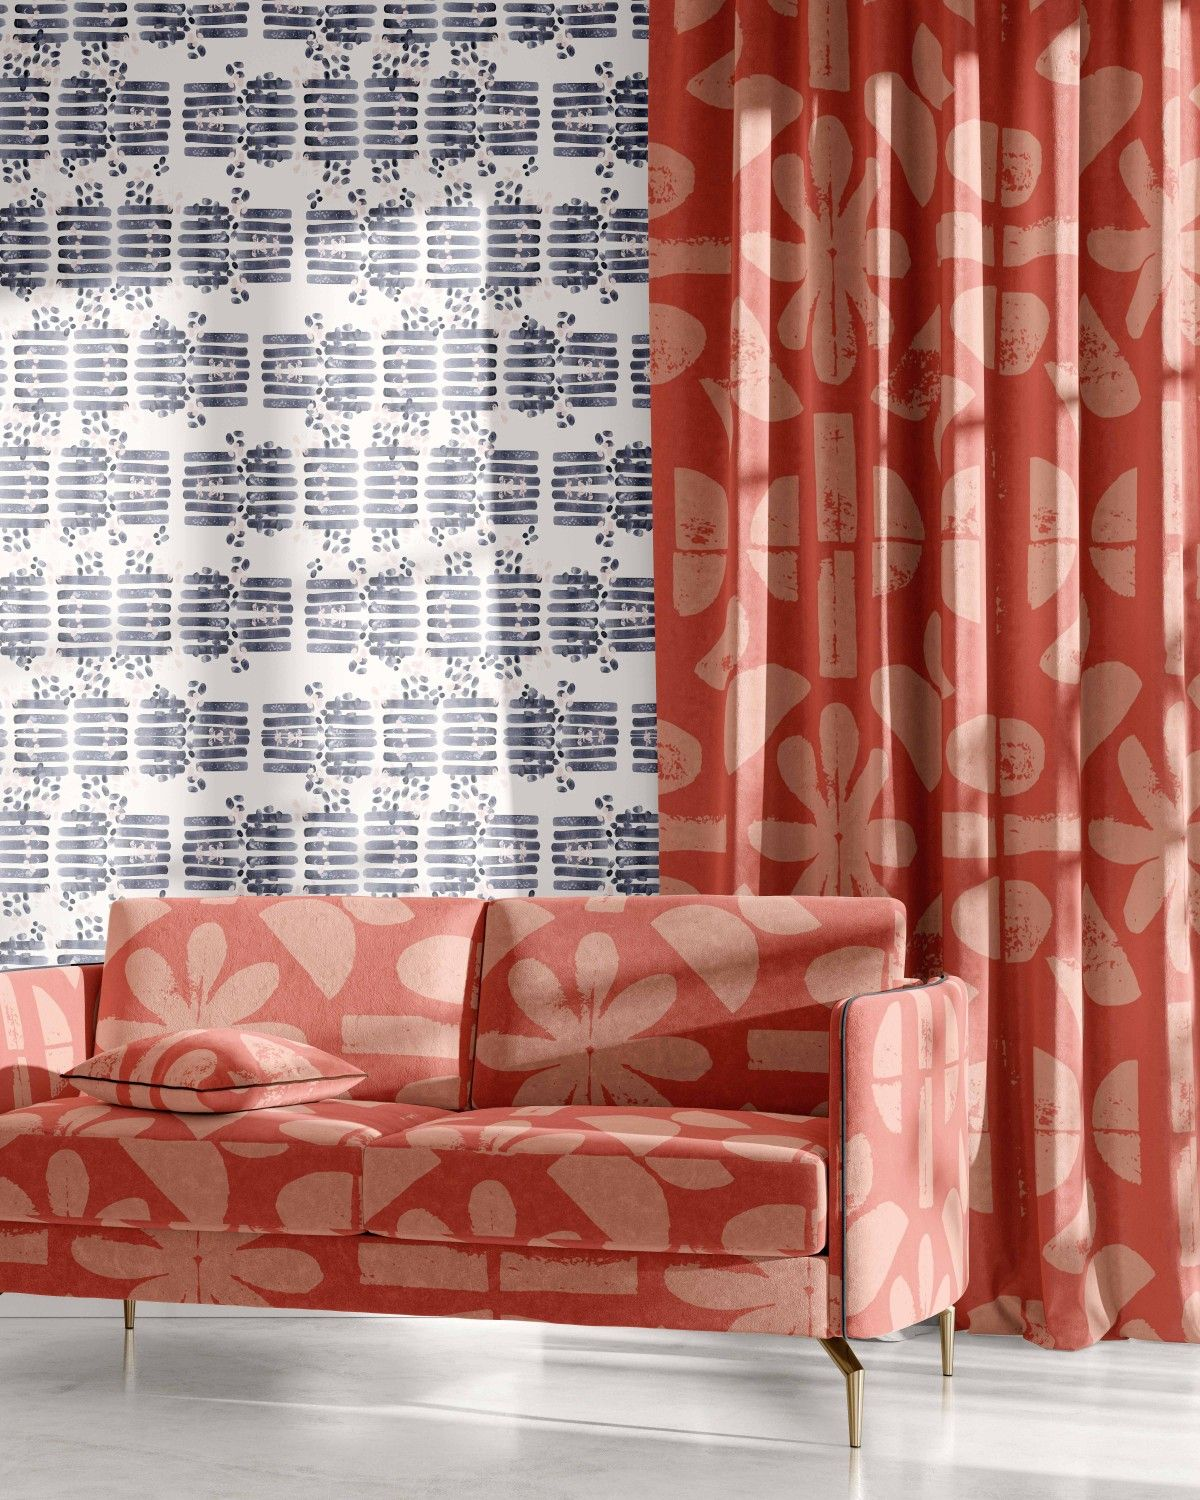 artisanal concept wallpaper curtain upholstery